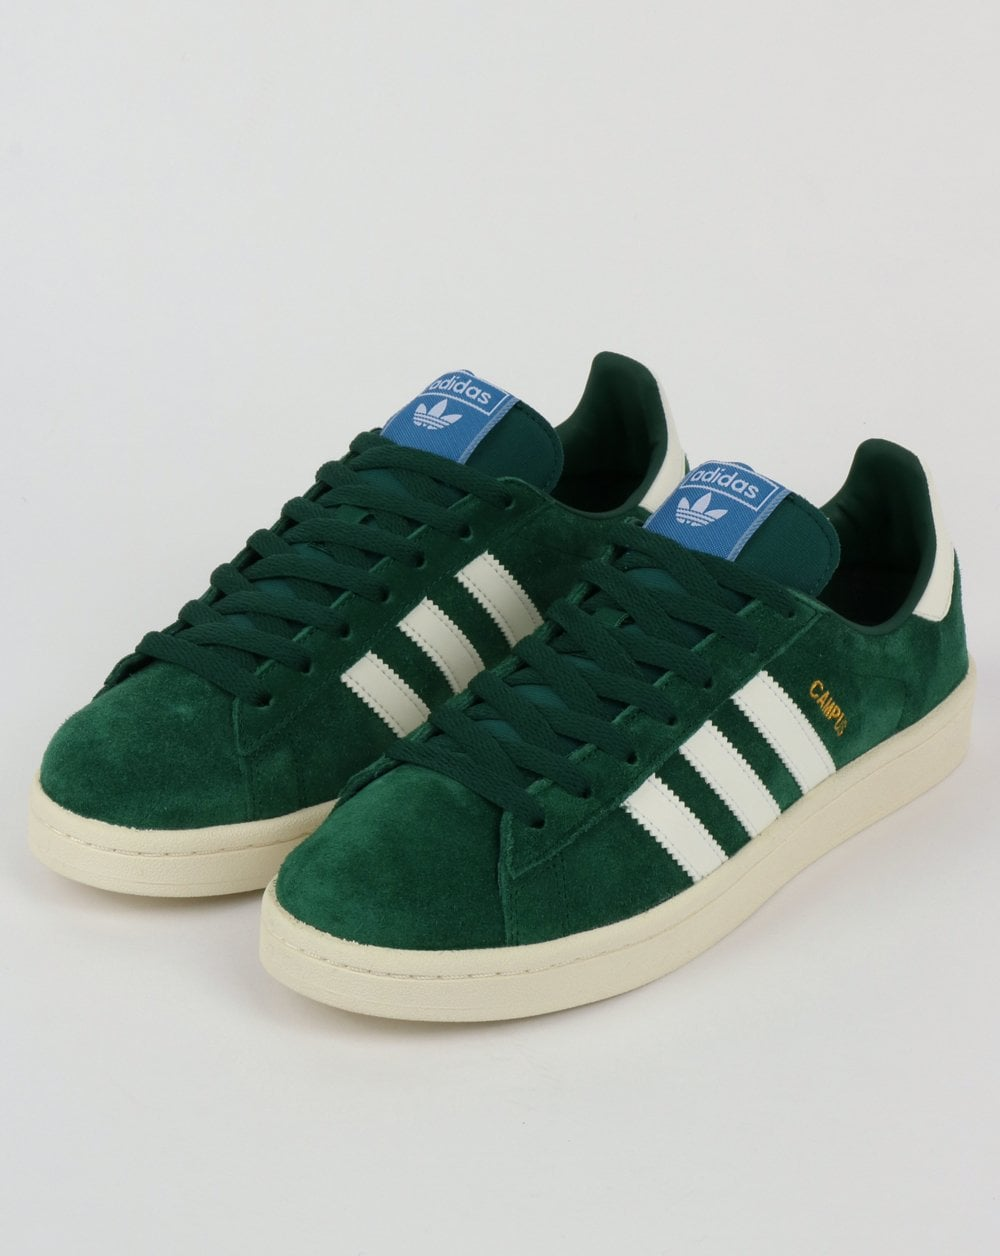 adidas shoes green